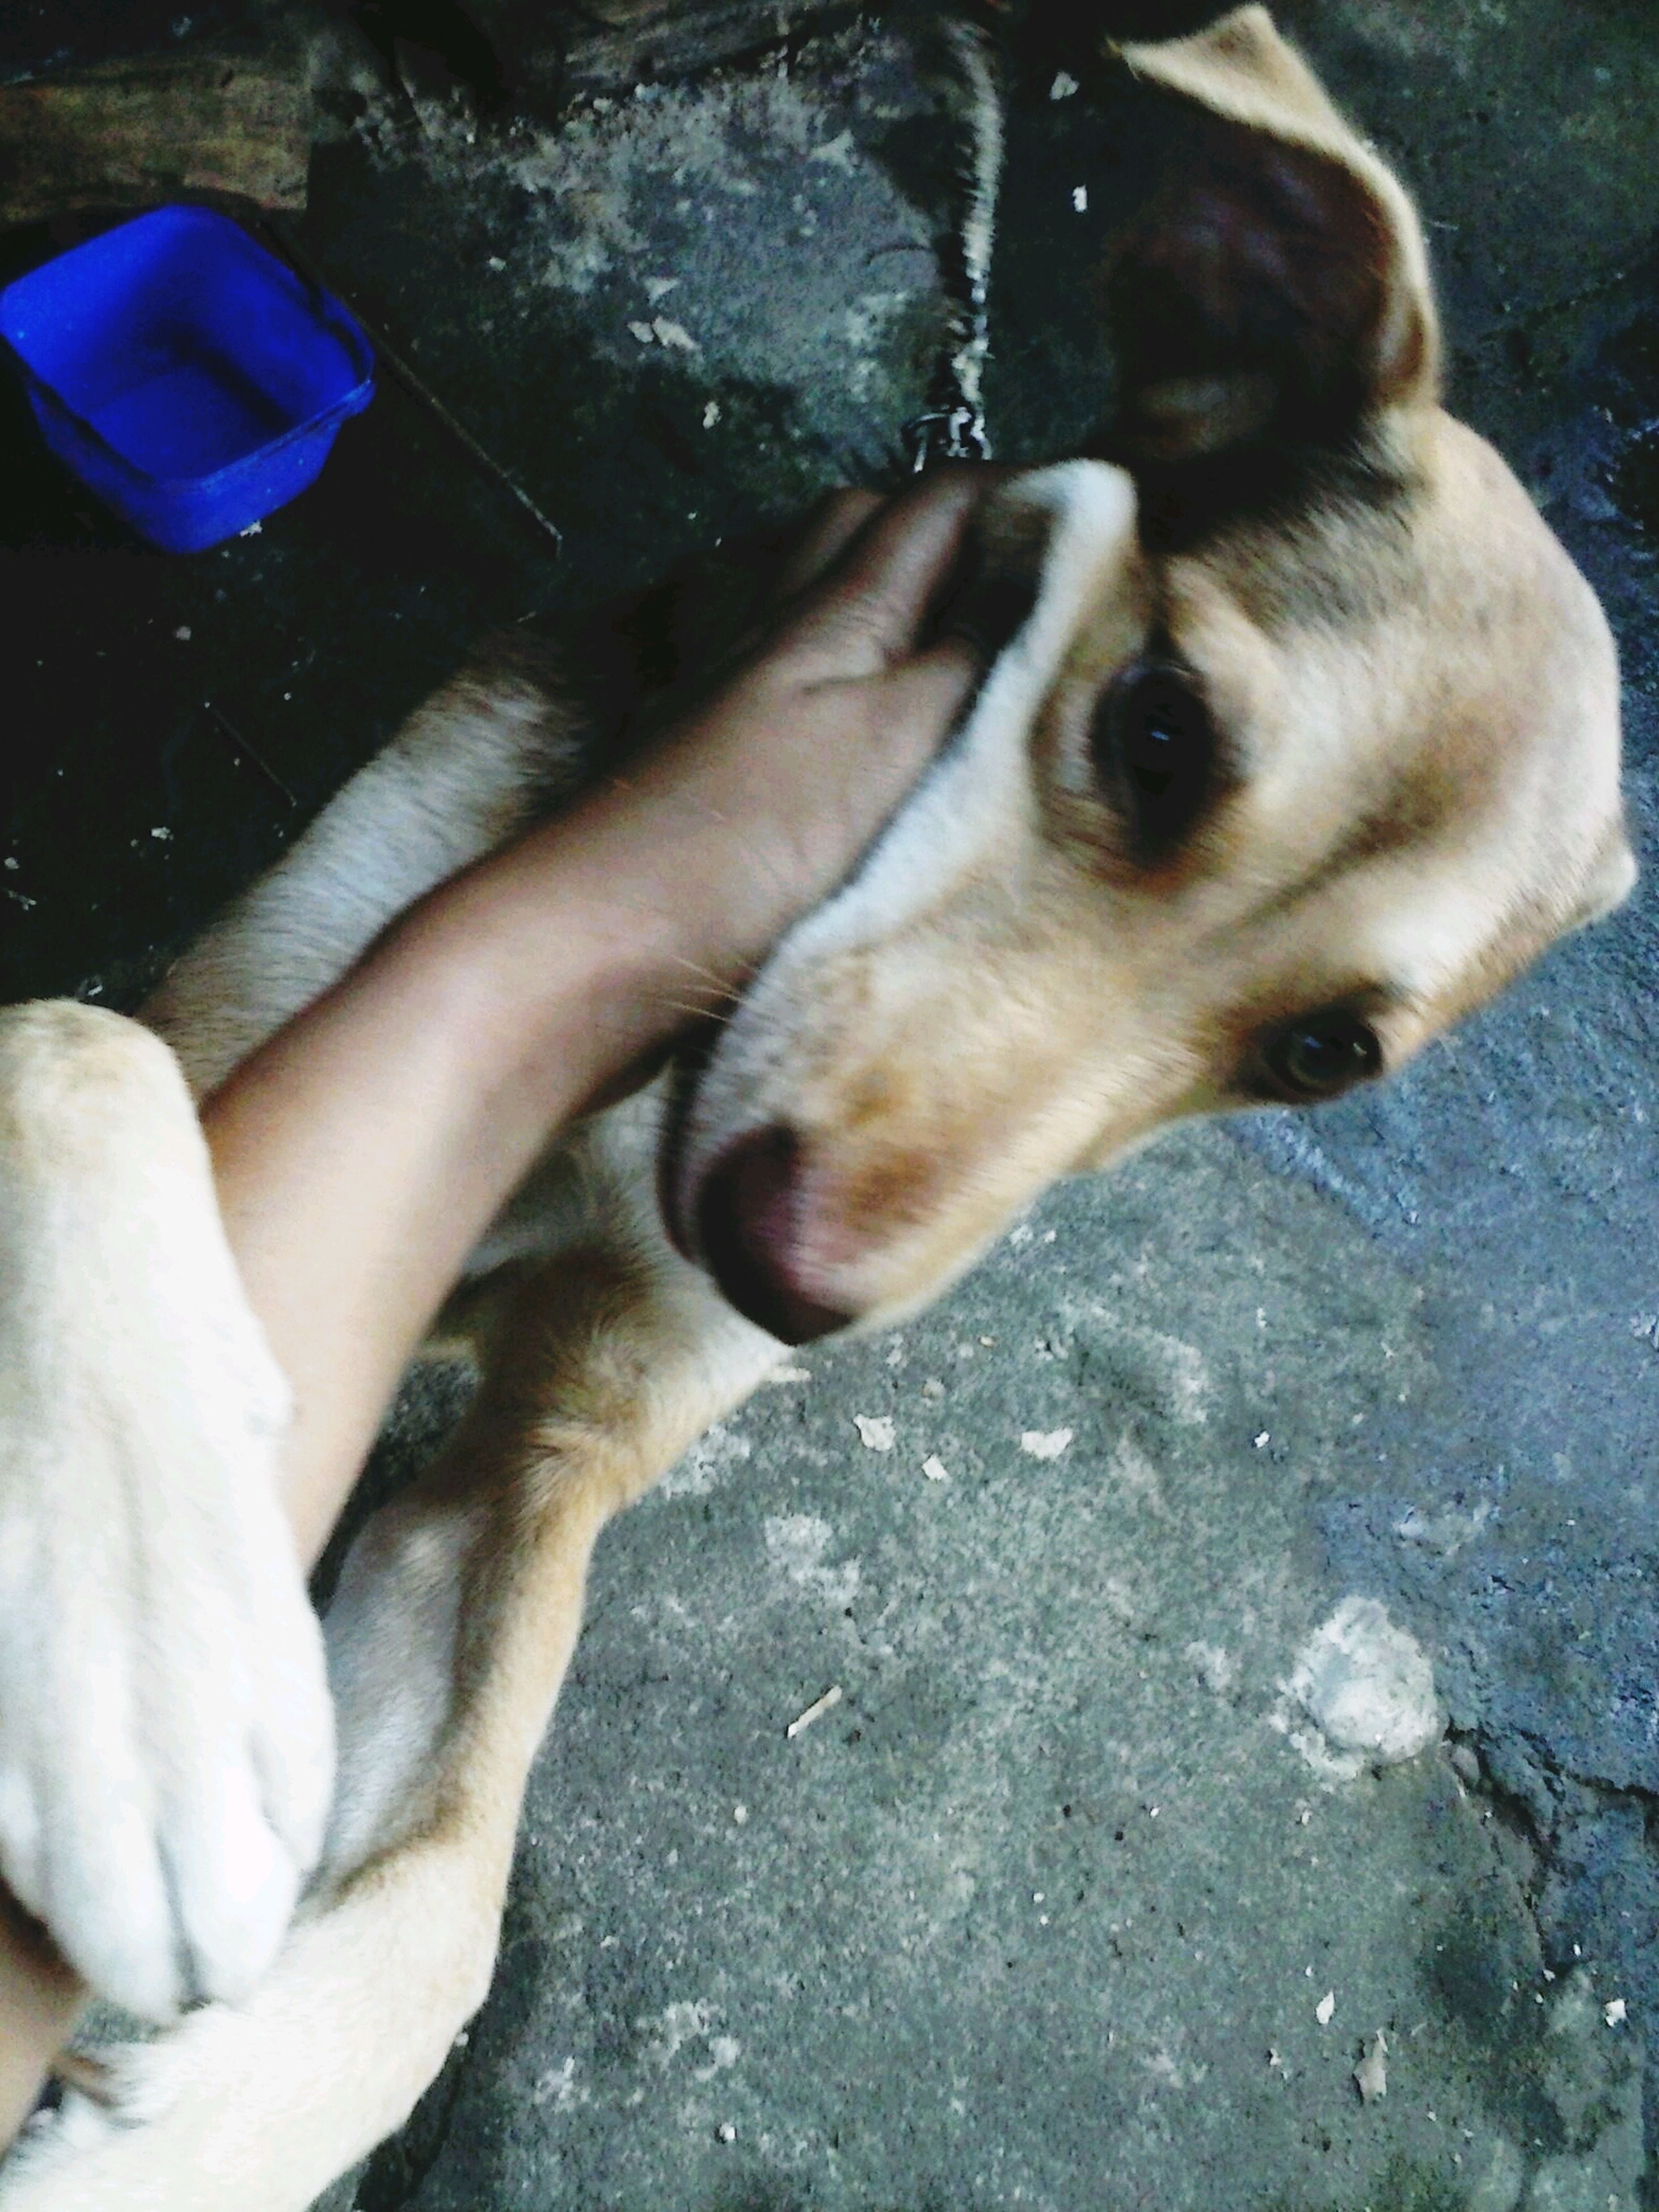 pets, domestic animals, animal themes, one animal, dog, mammal, human body part, one person, lifestyles, close-up, human leg, real people, indoors, human hand, day, low section